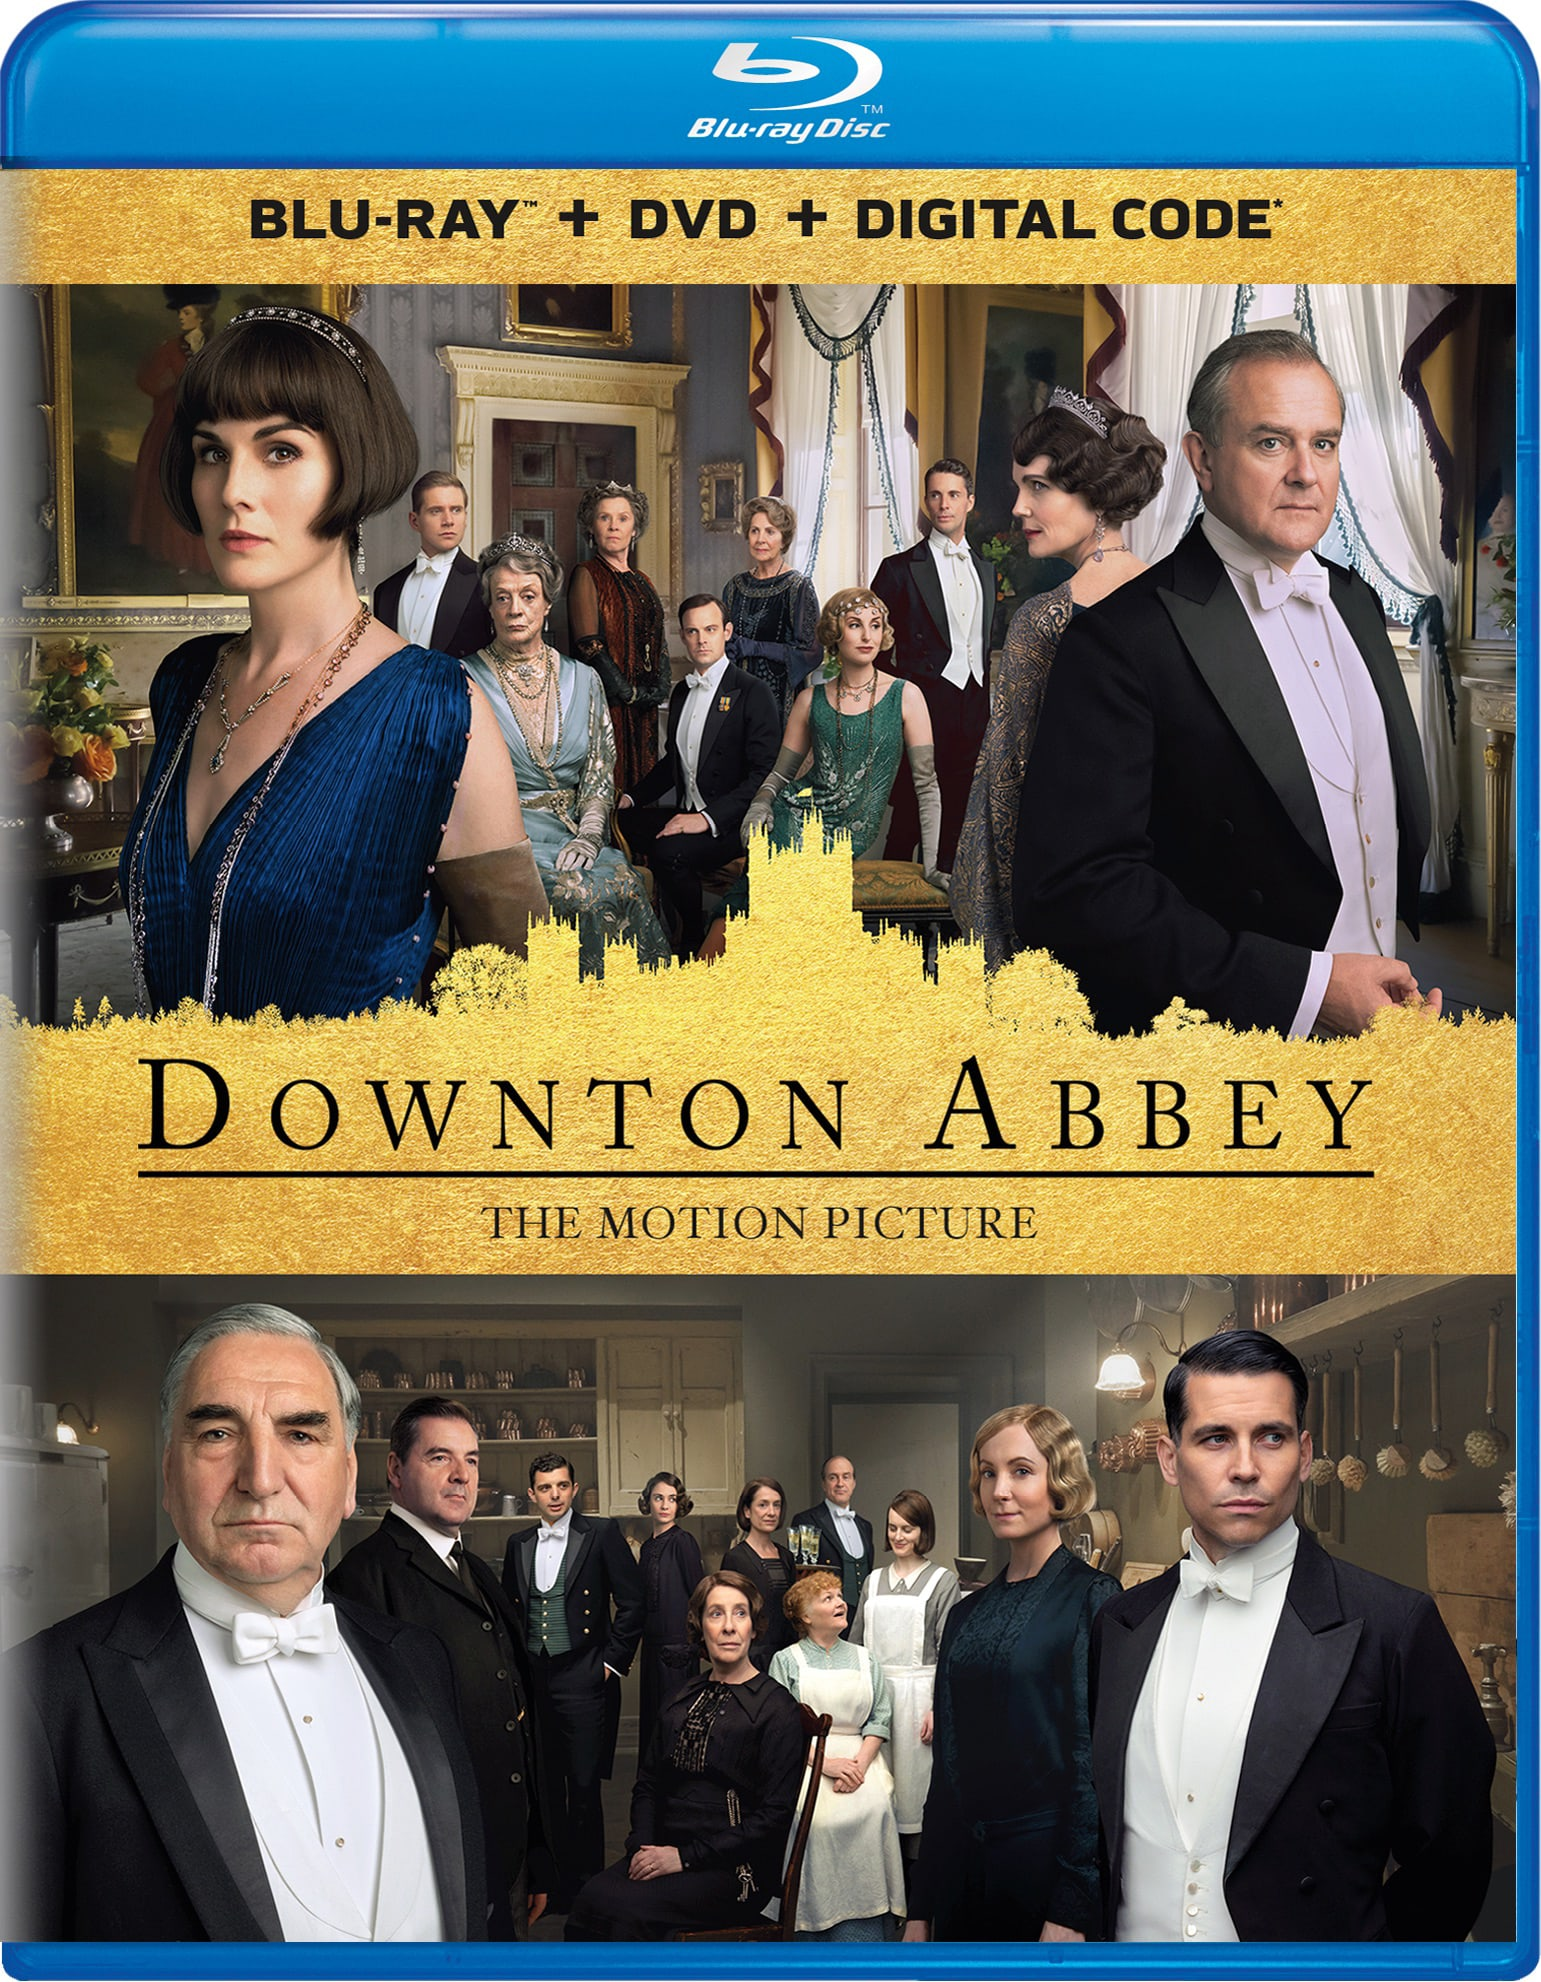 Downton Abbey: The Movie (DVD + Digital) [Blu-ray]